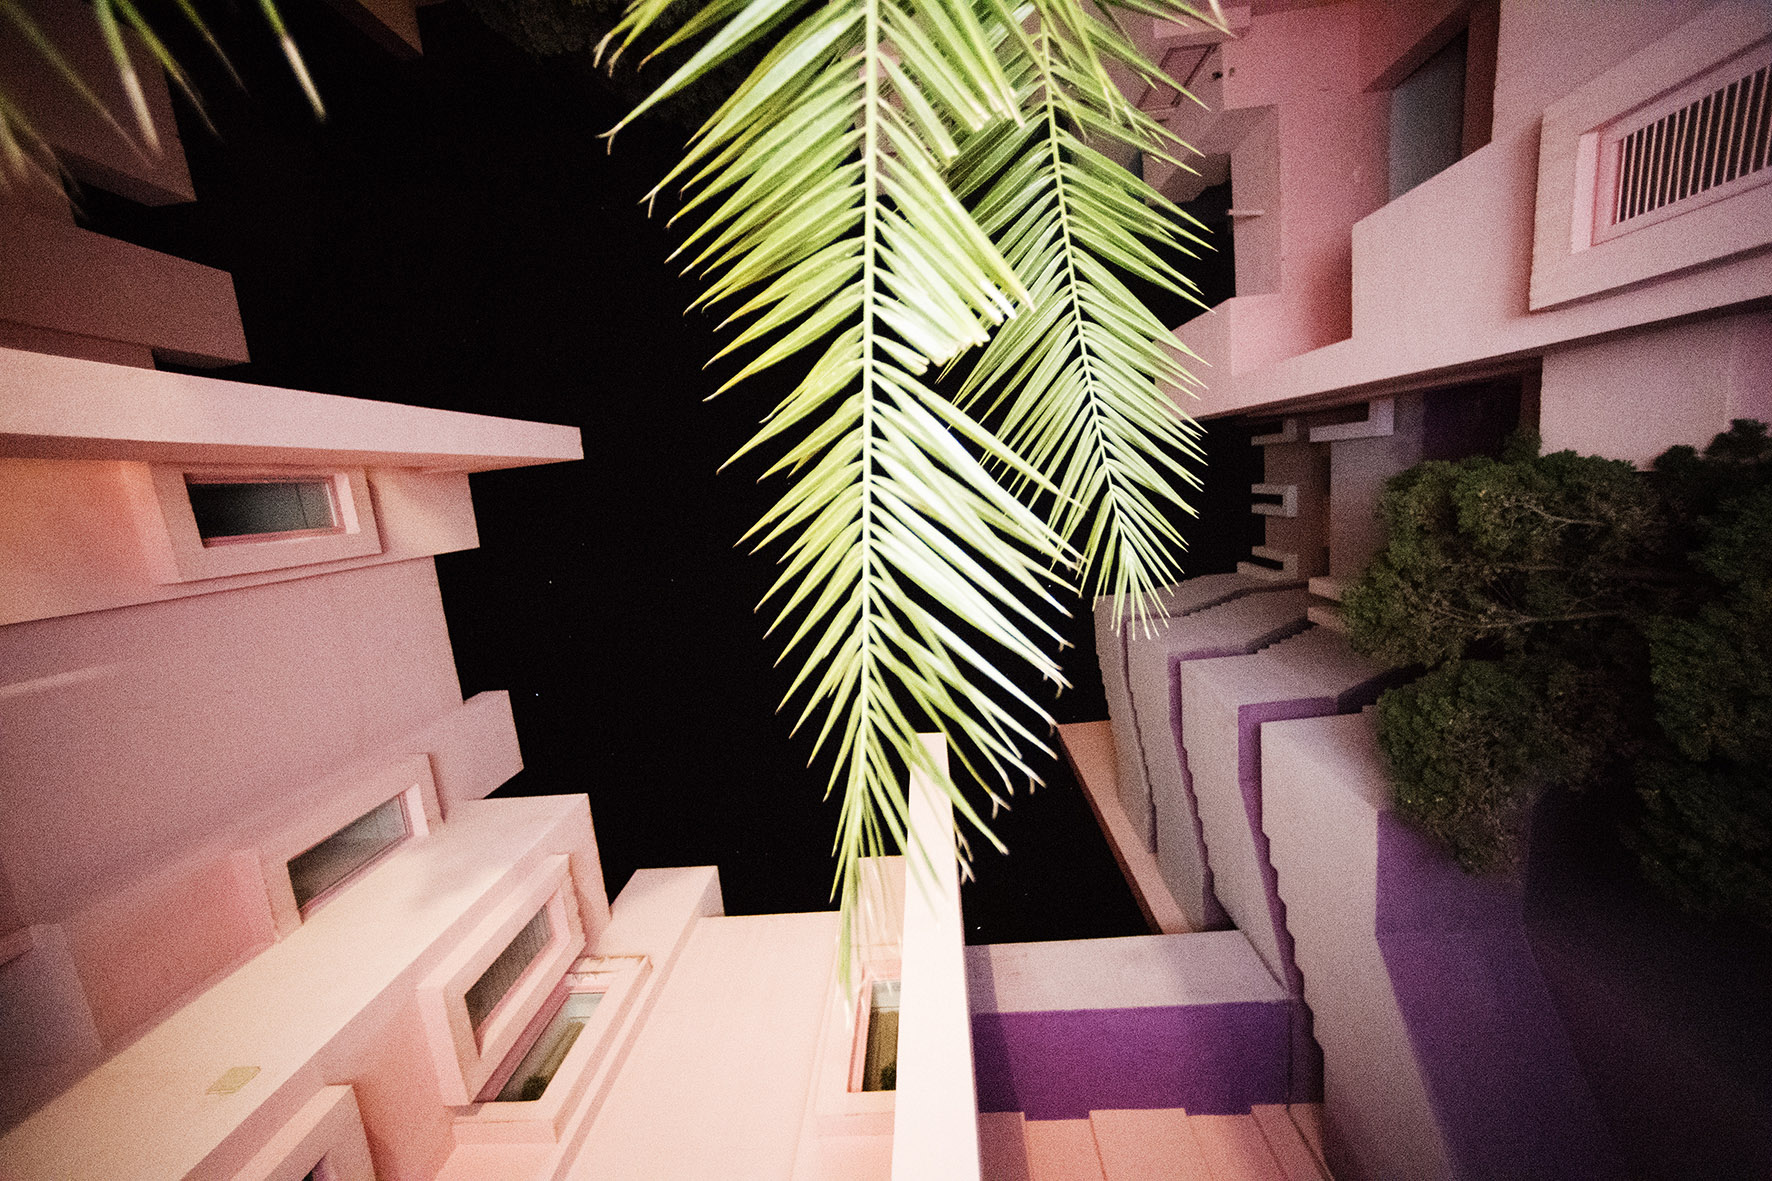 Calpe, La Muralla Roja, Spain>March 2018